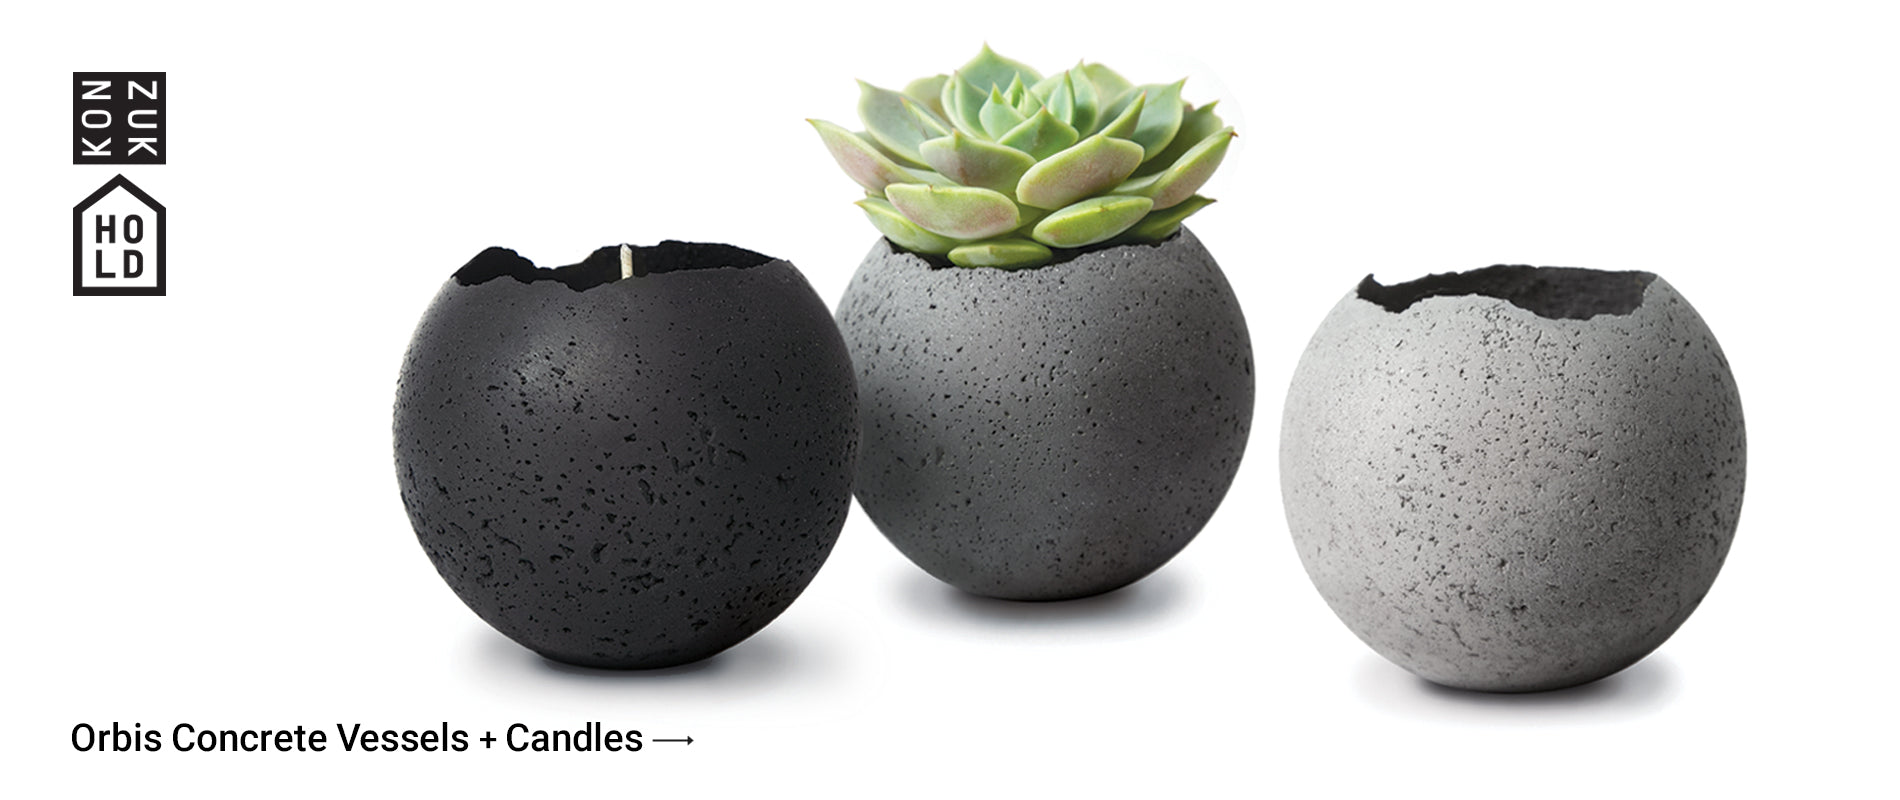 Concrete vessels and candles by KONZUK